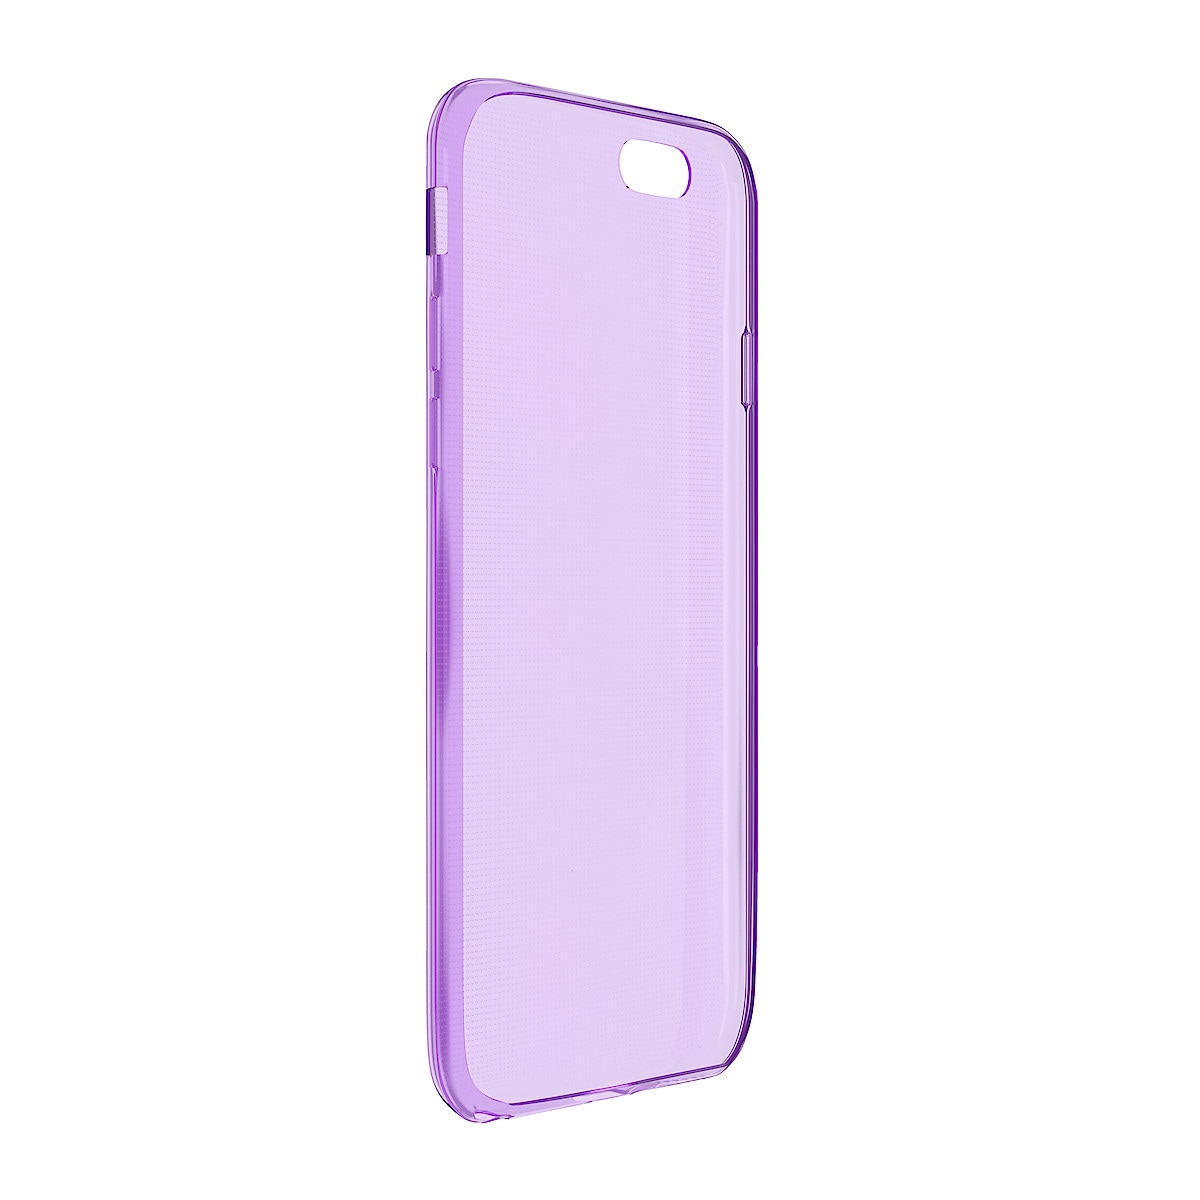 Easy Grip Mobile Phone Case for iPhone 6/6S